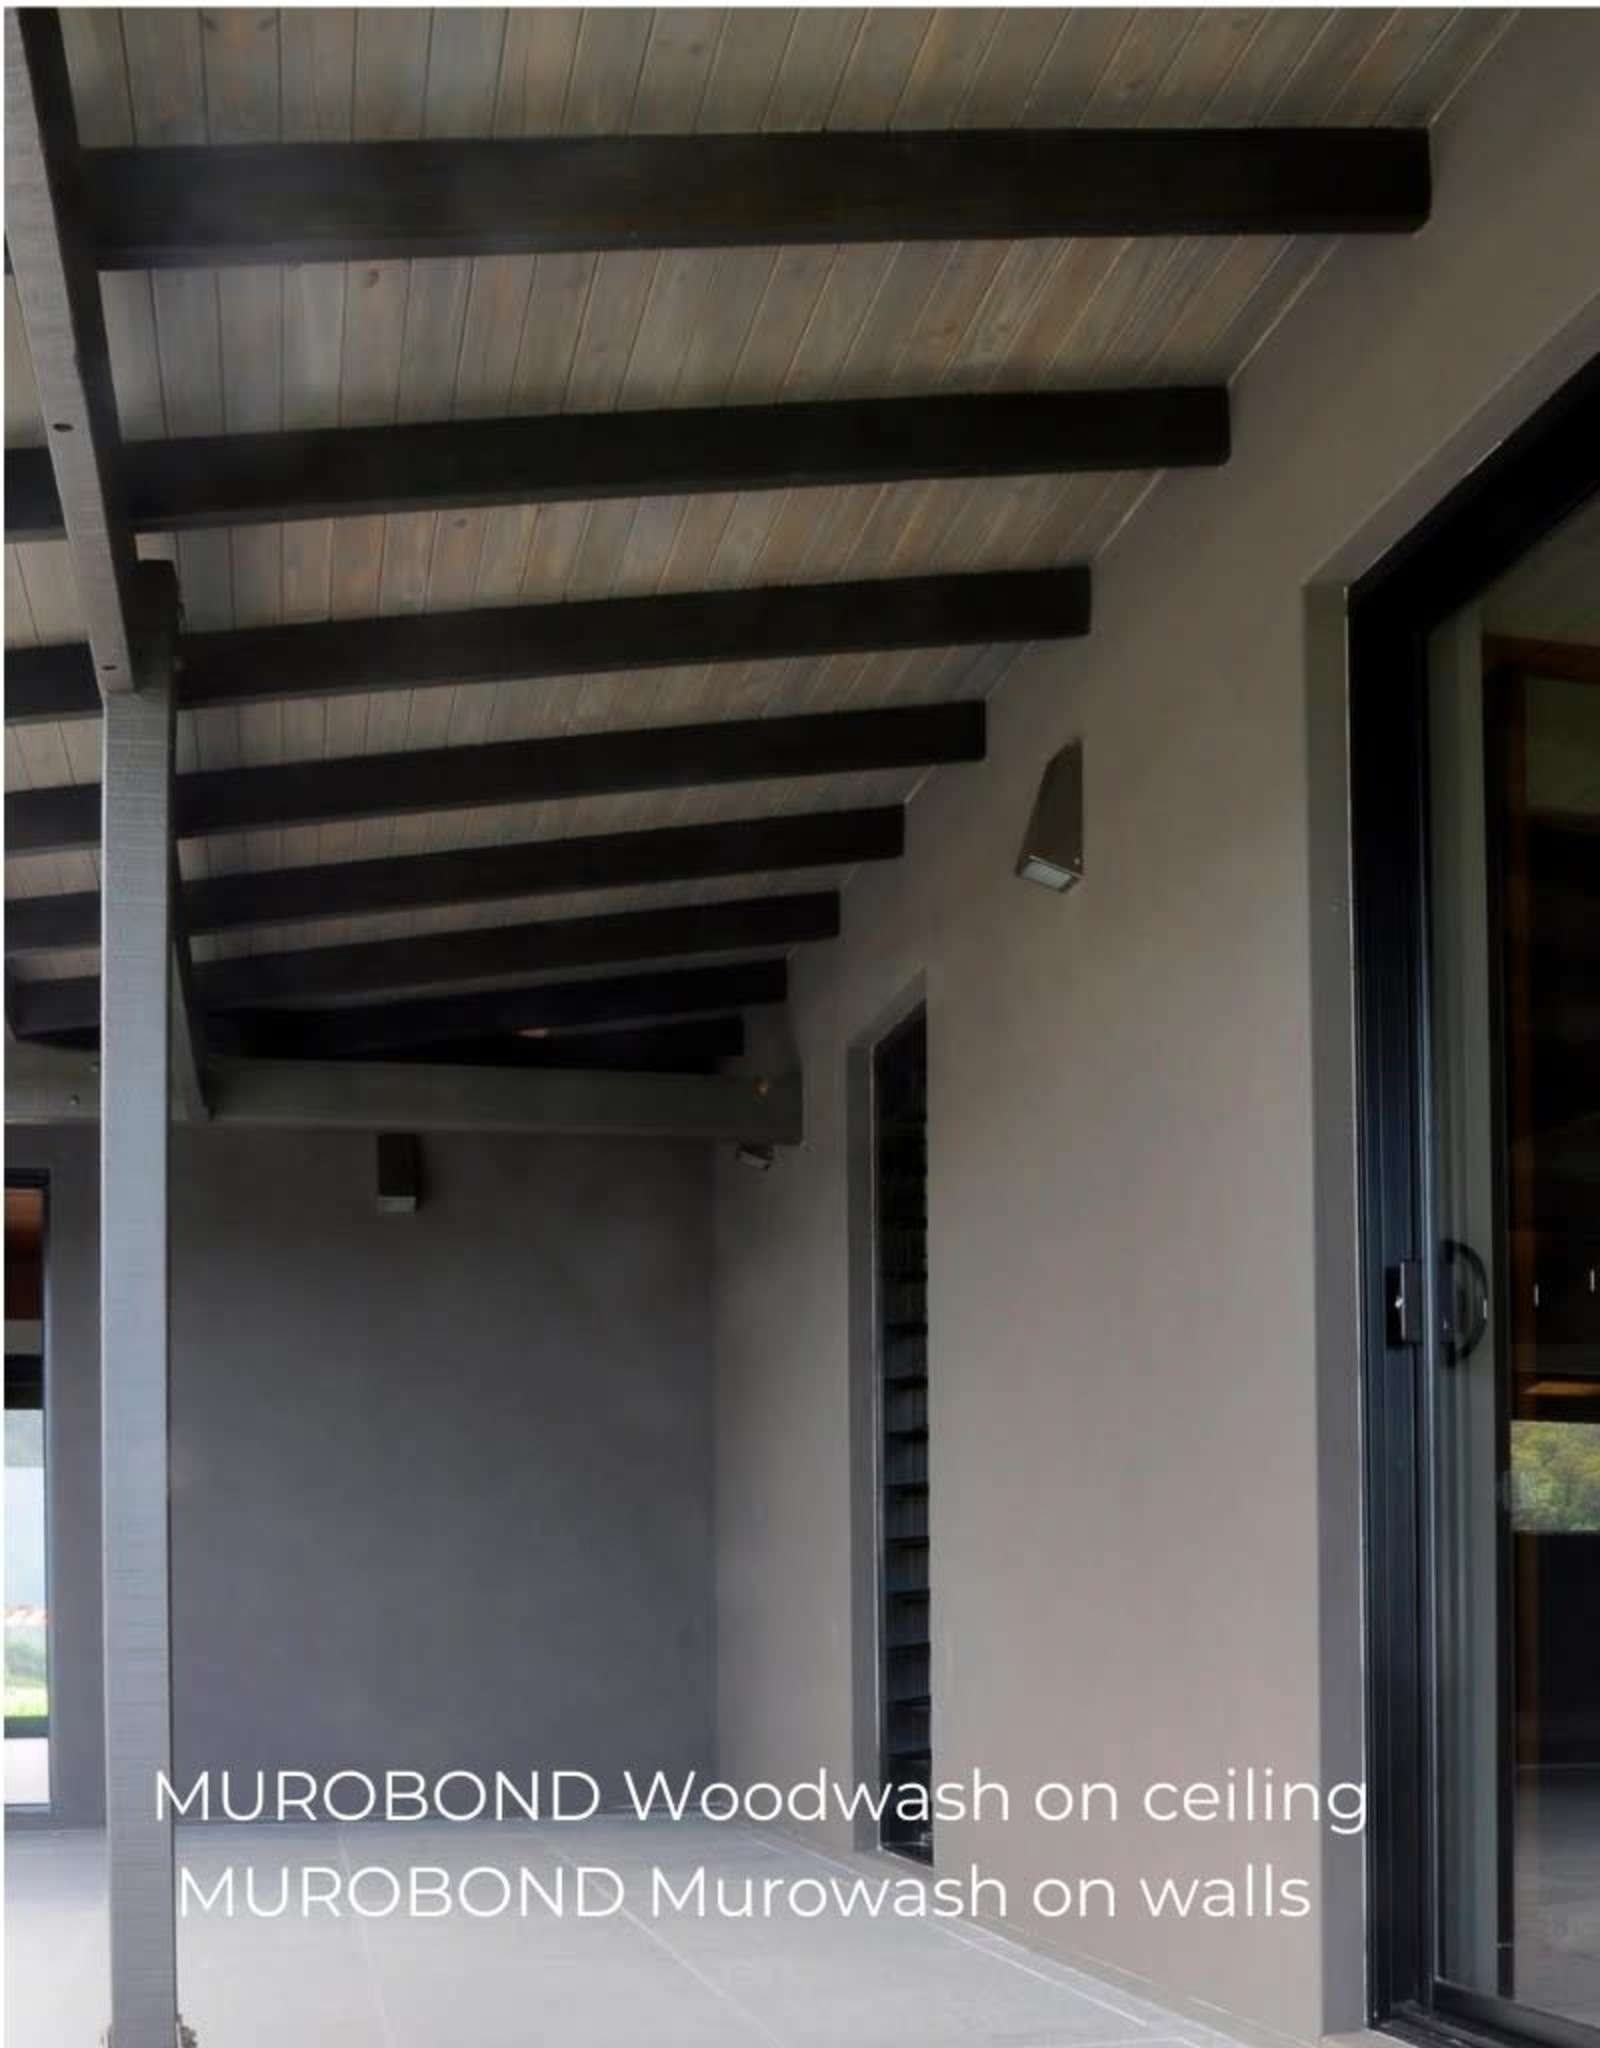 MUROBOND Woodwash INTERIOR